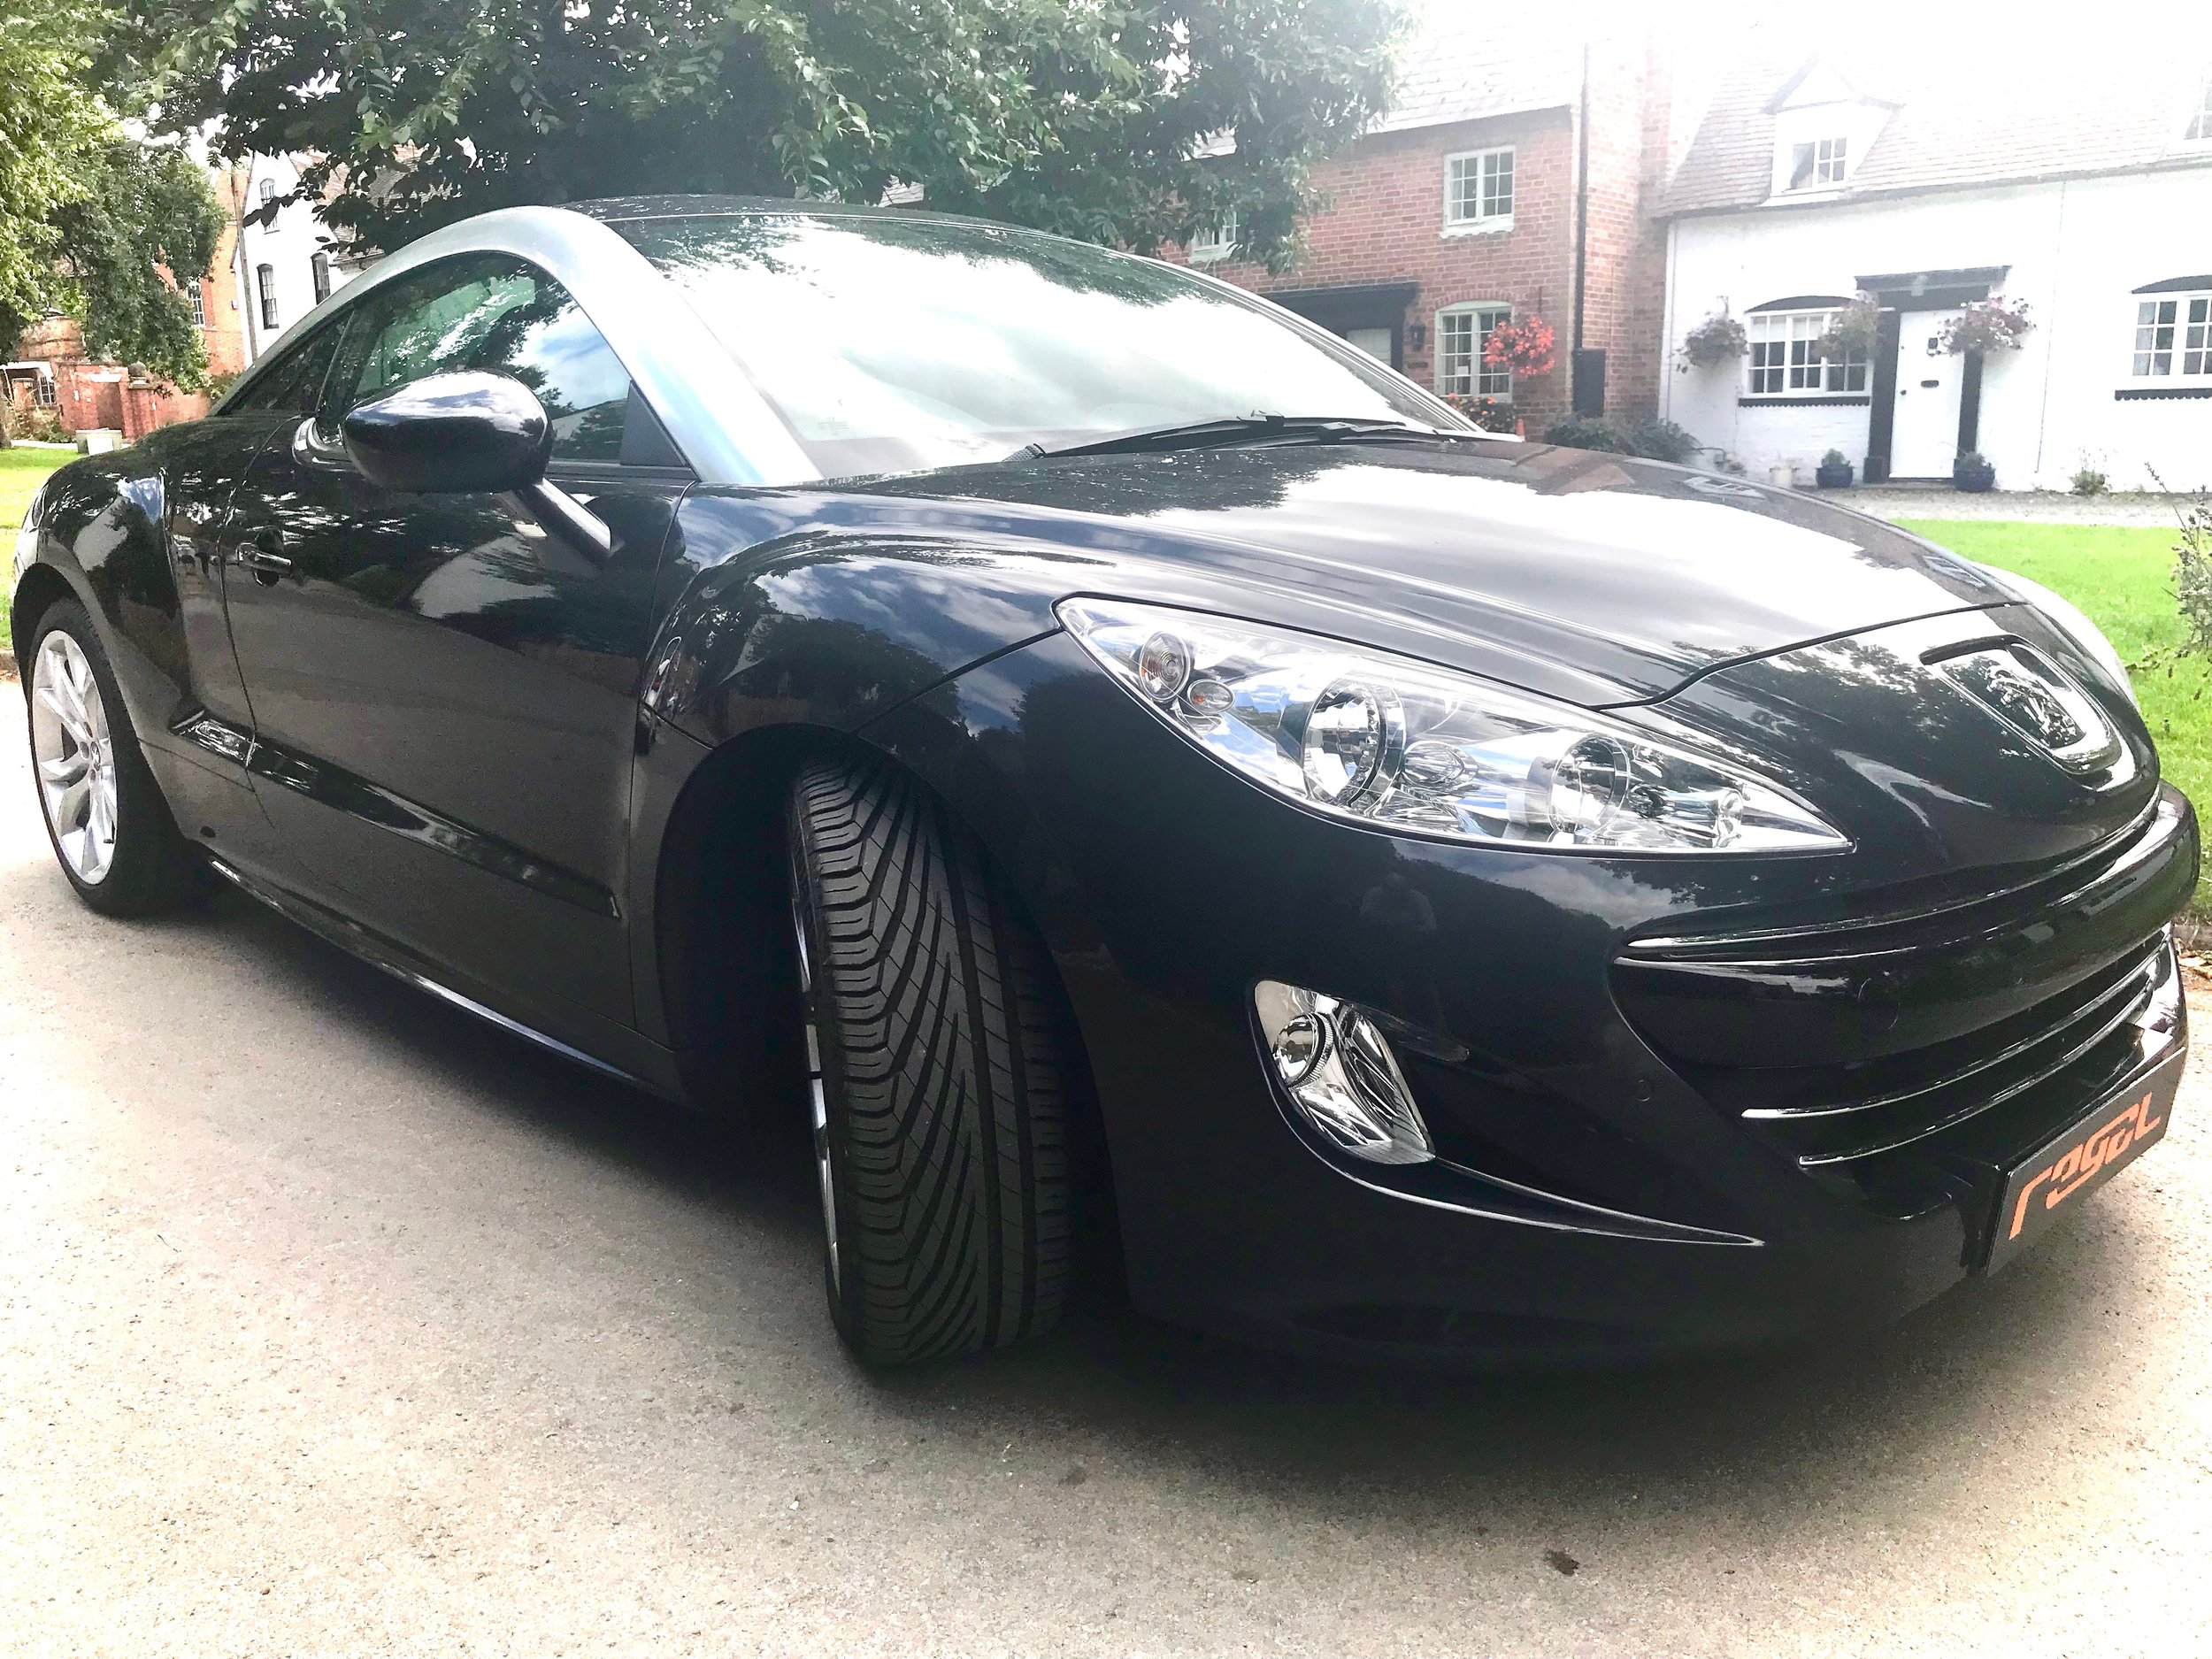 peugeot-rcz-gt-thp-used-car-forsale-regalmotion40.jpeg